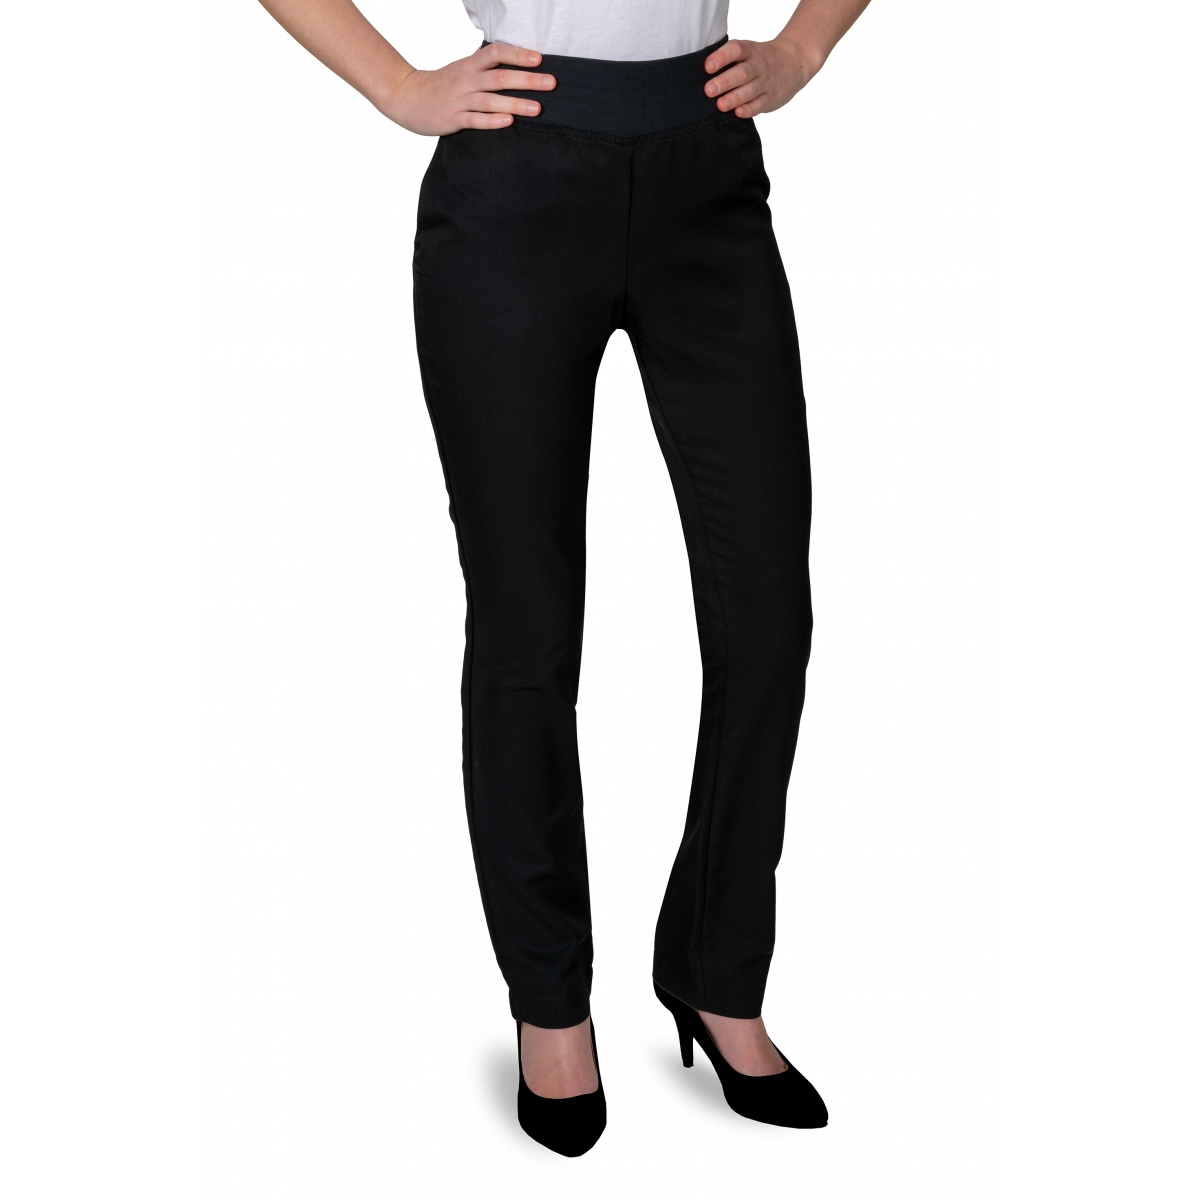 VETEMENTS - MAUD PROFESSIONAL SHOP - PANTALON PROFESSIONNEL FEMME MAUD NOIR